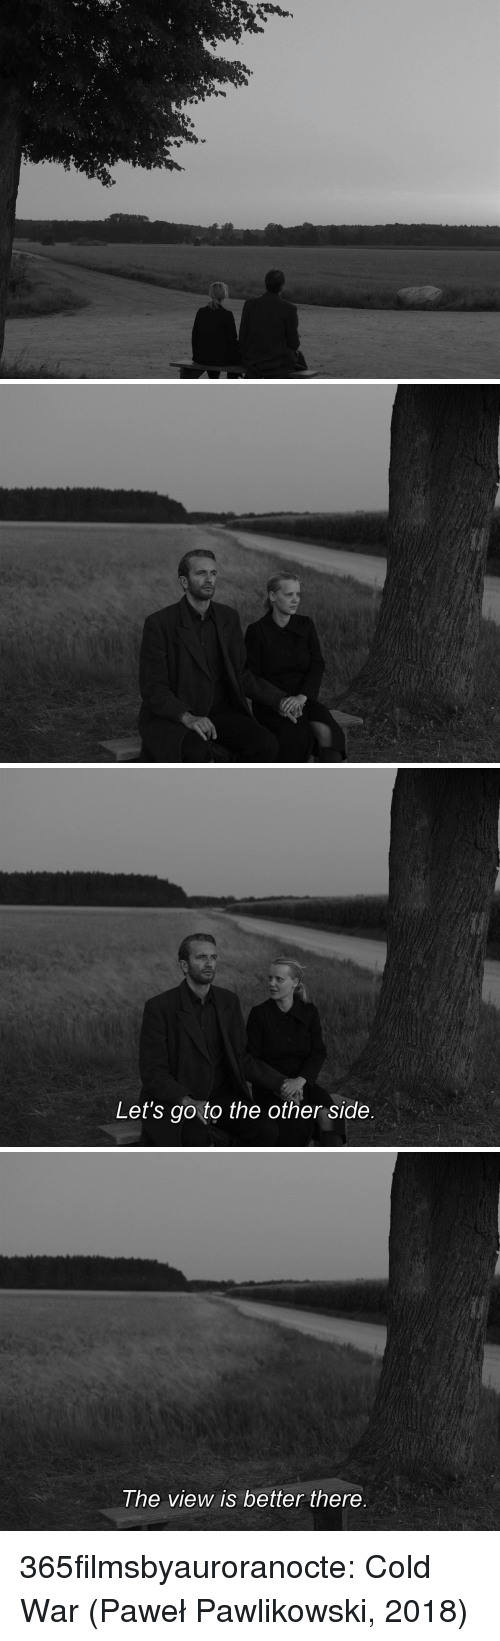 pawe: Let's go to the other side   he view is better there 365filmsbyauroranocte:    Cold War (Paweł Pawlikowski, 2018)